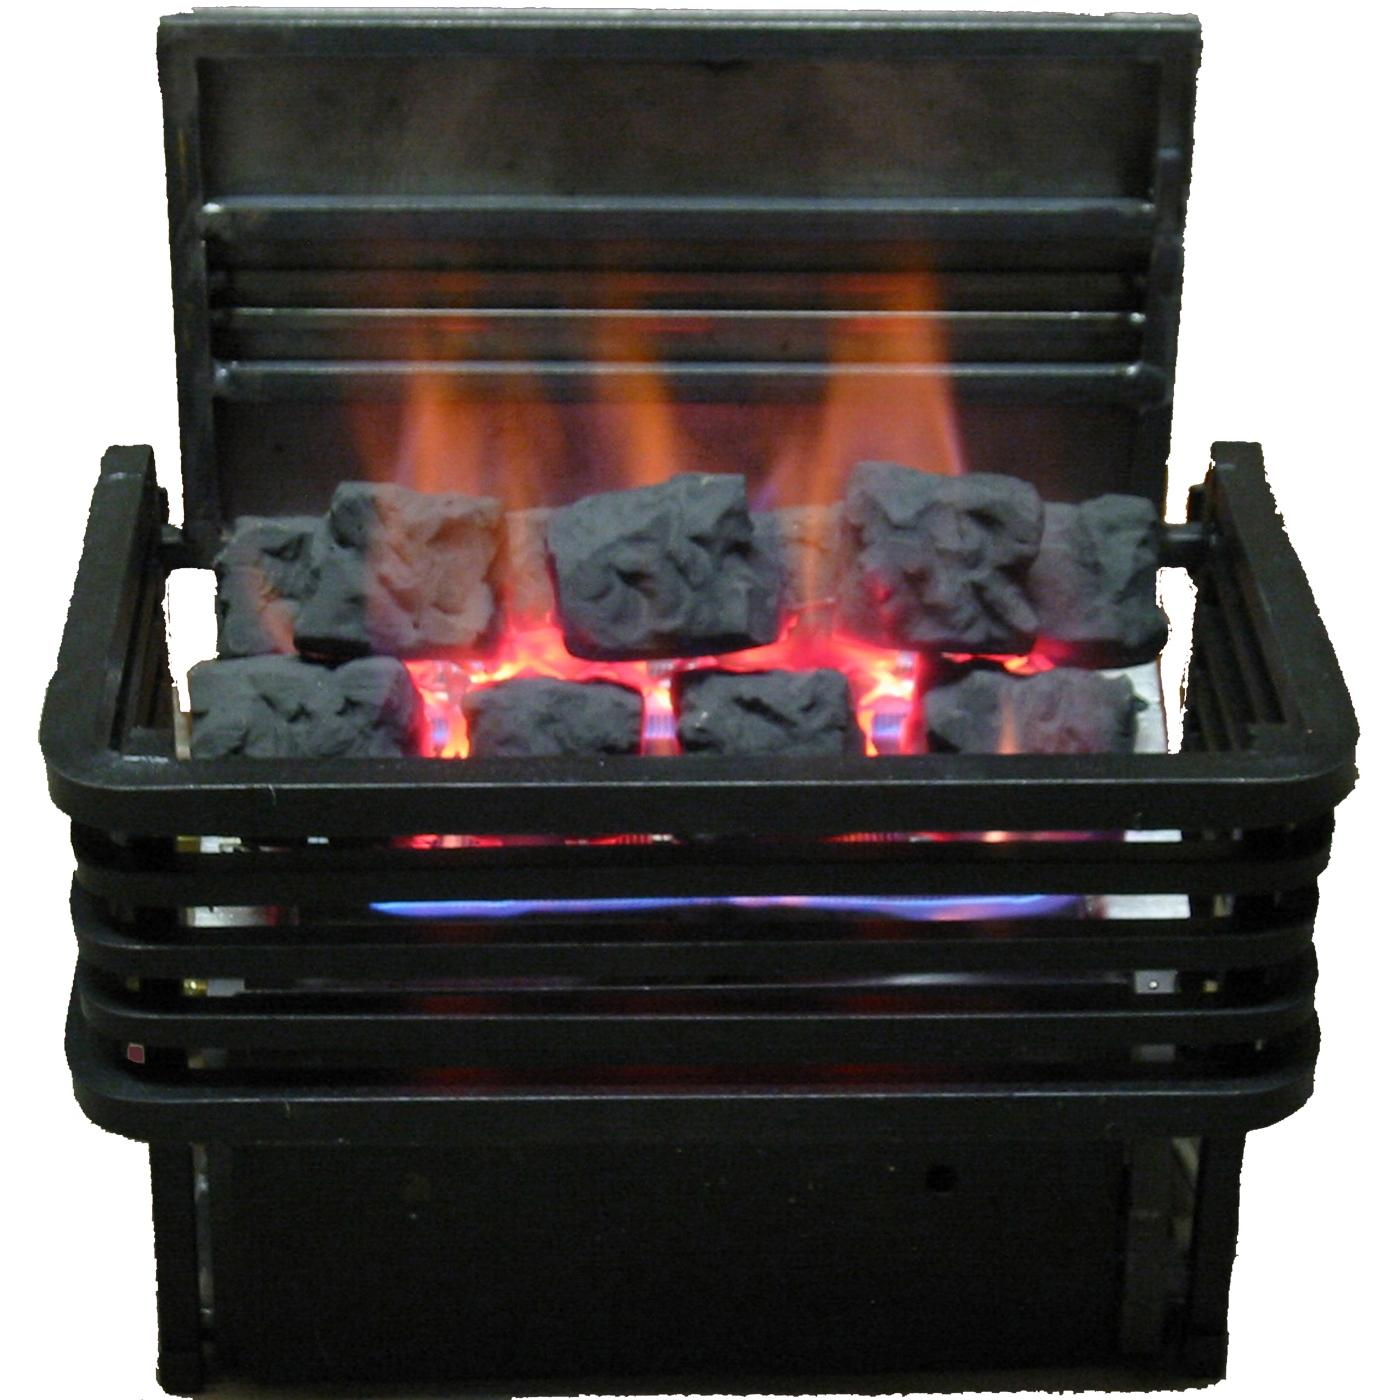 Modern Ventless Propane Fireplaces Search